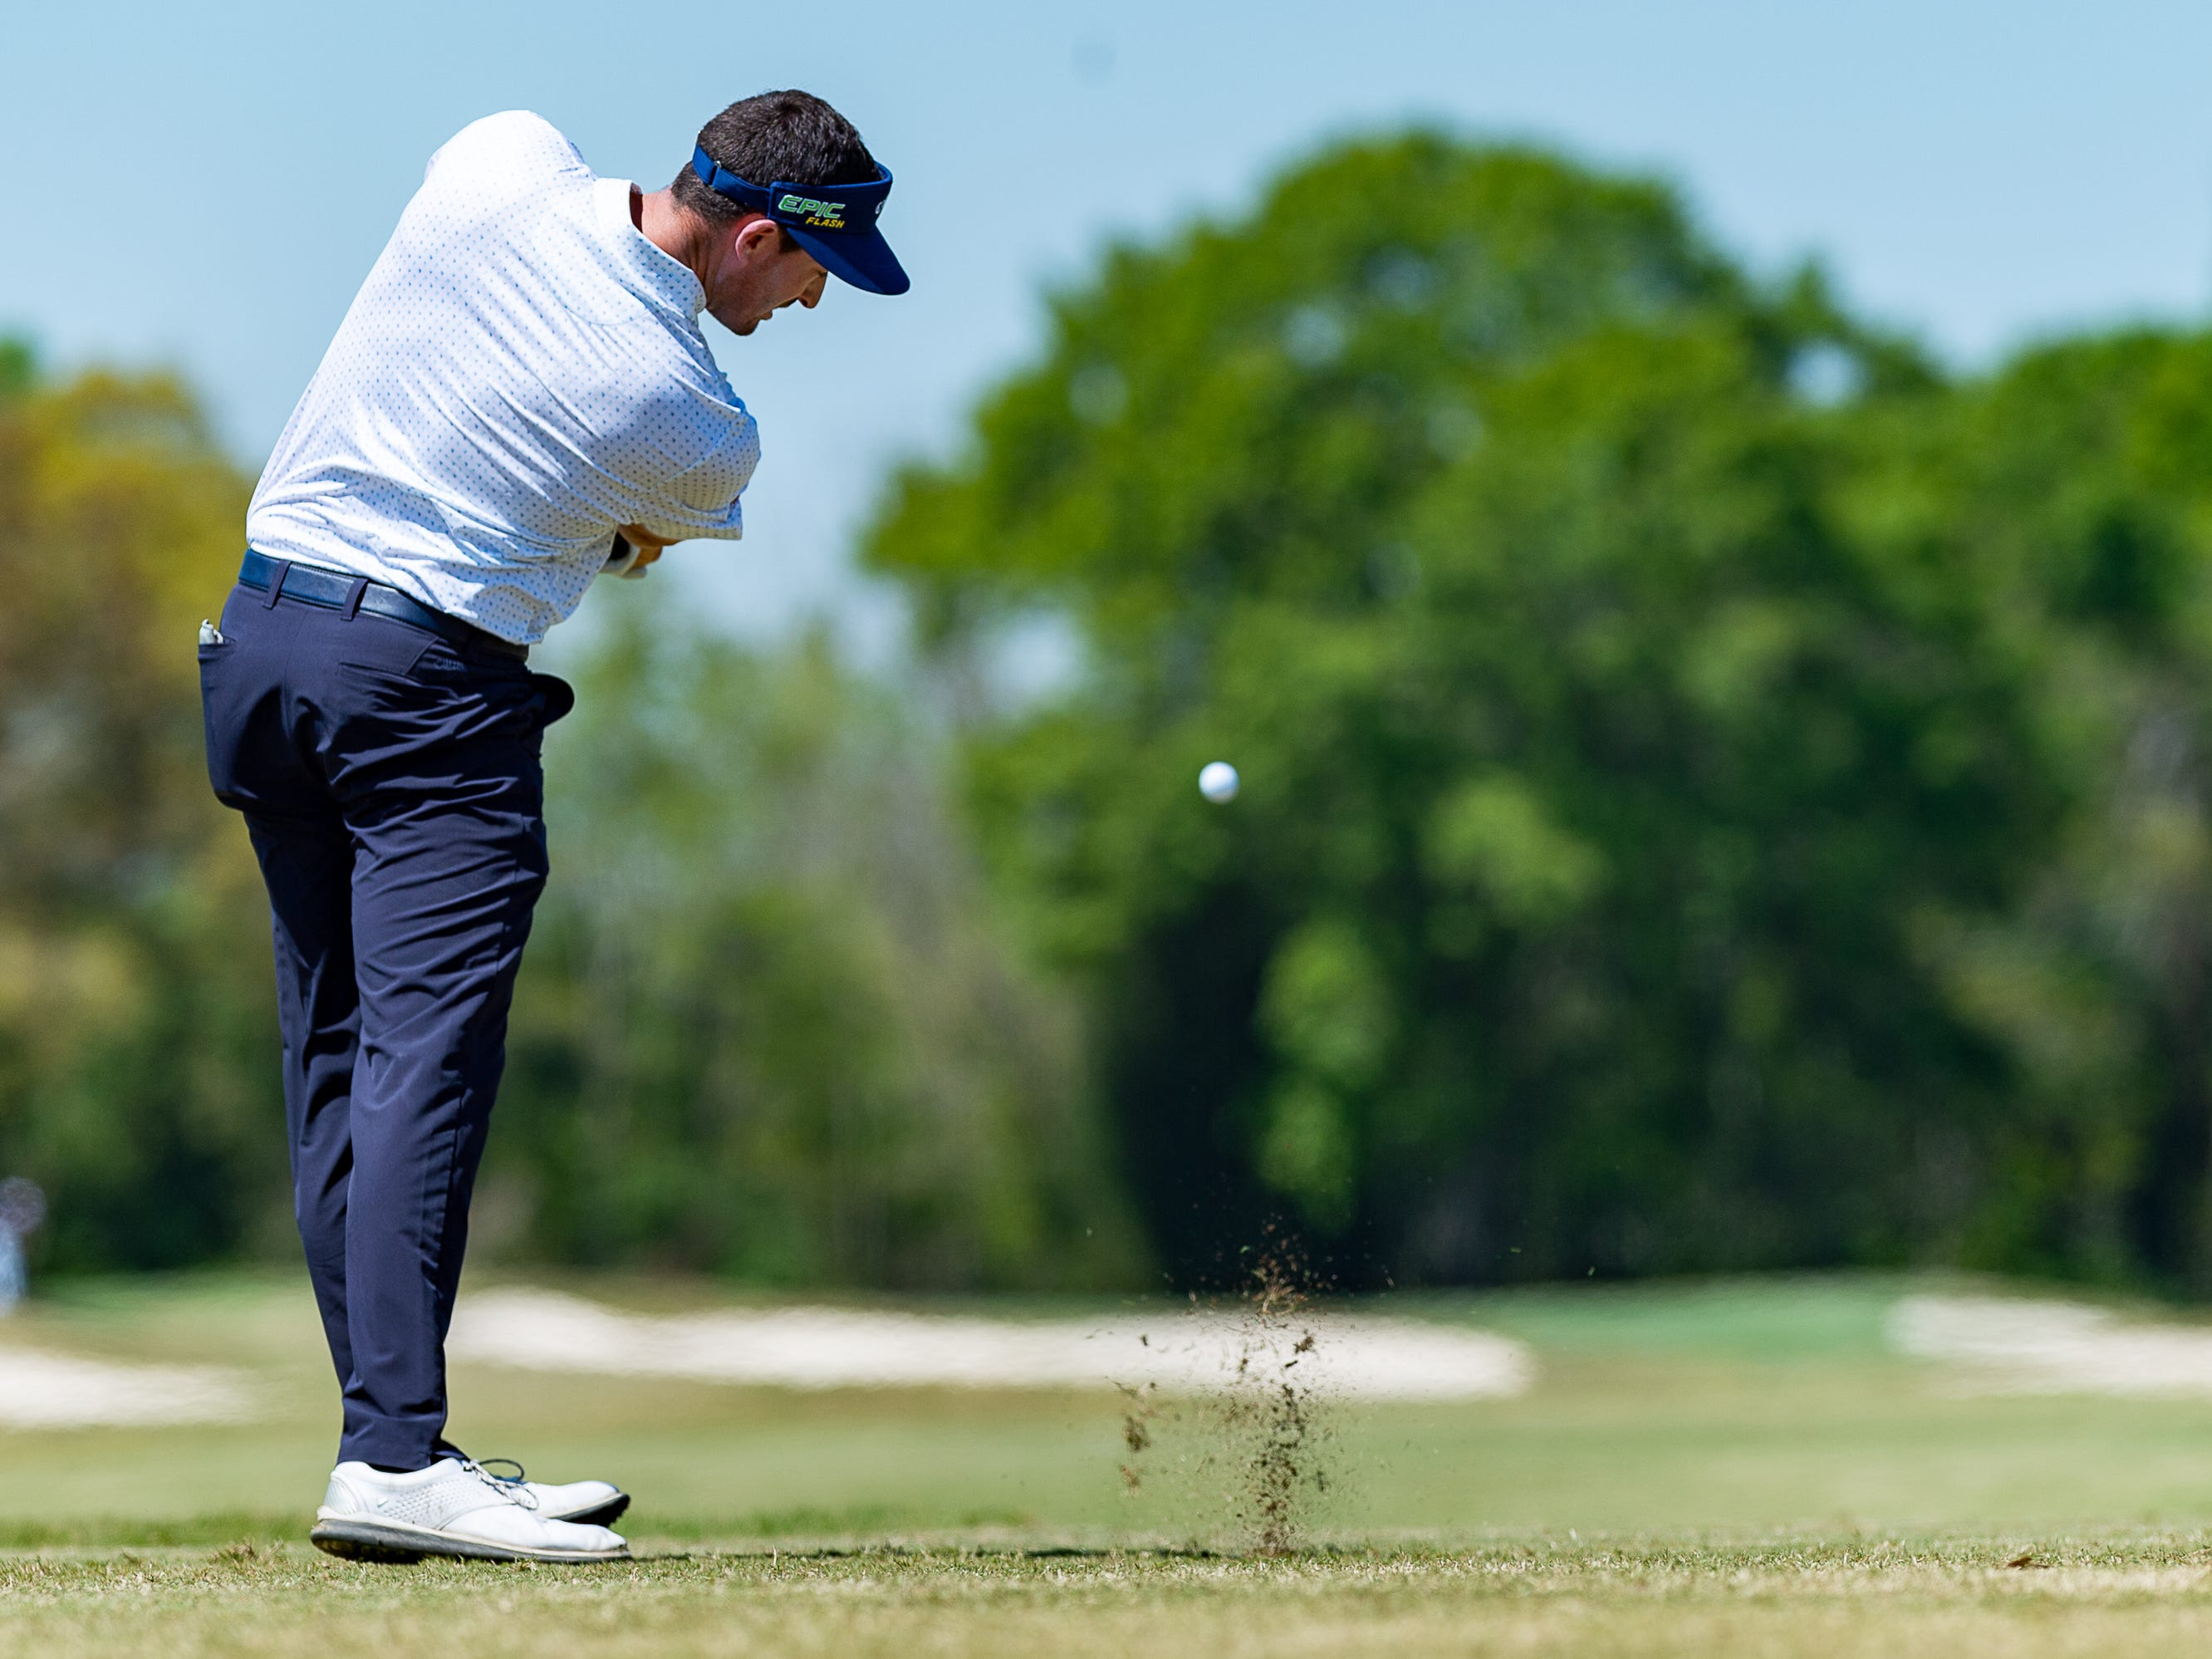 Chase Seiffert on the tee as the The Web.com Tour is in Lafayette for the 2019 Chitimacha Louisiana Open at Le Triomphe. Friday, March 22, 2019.